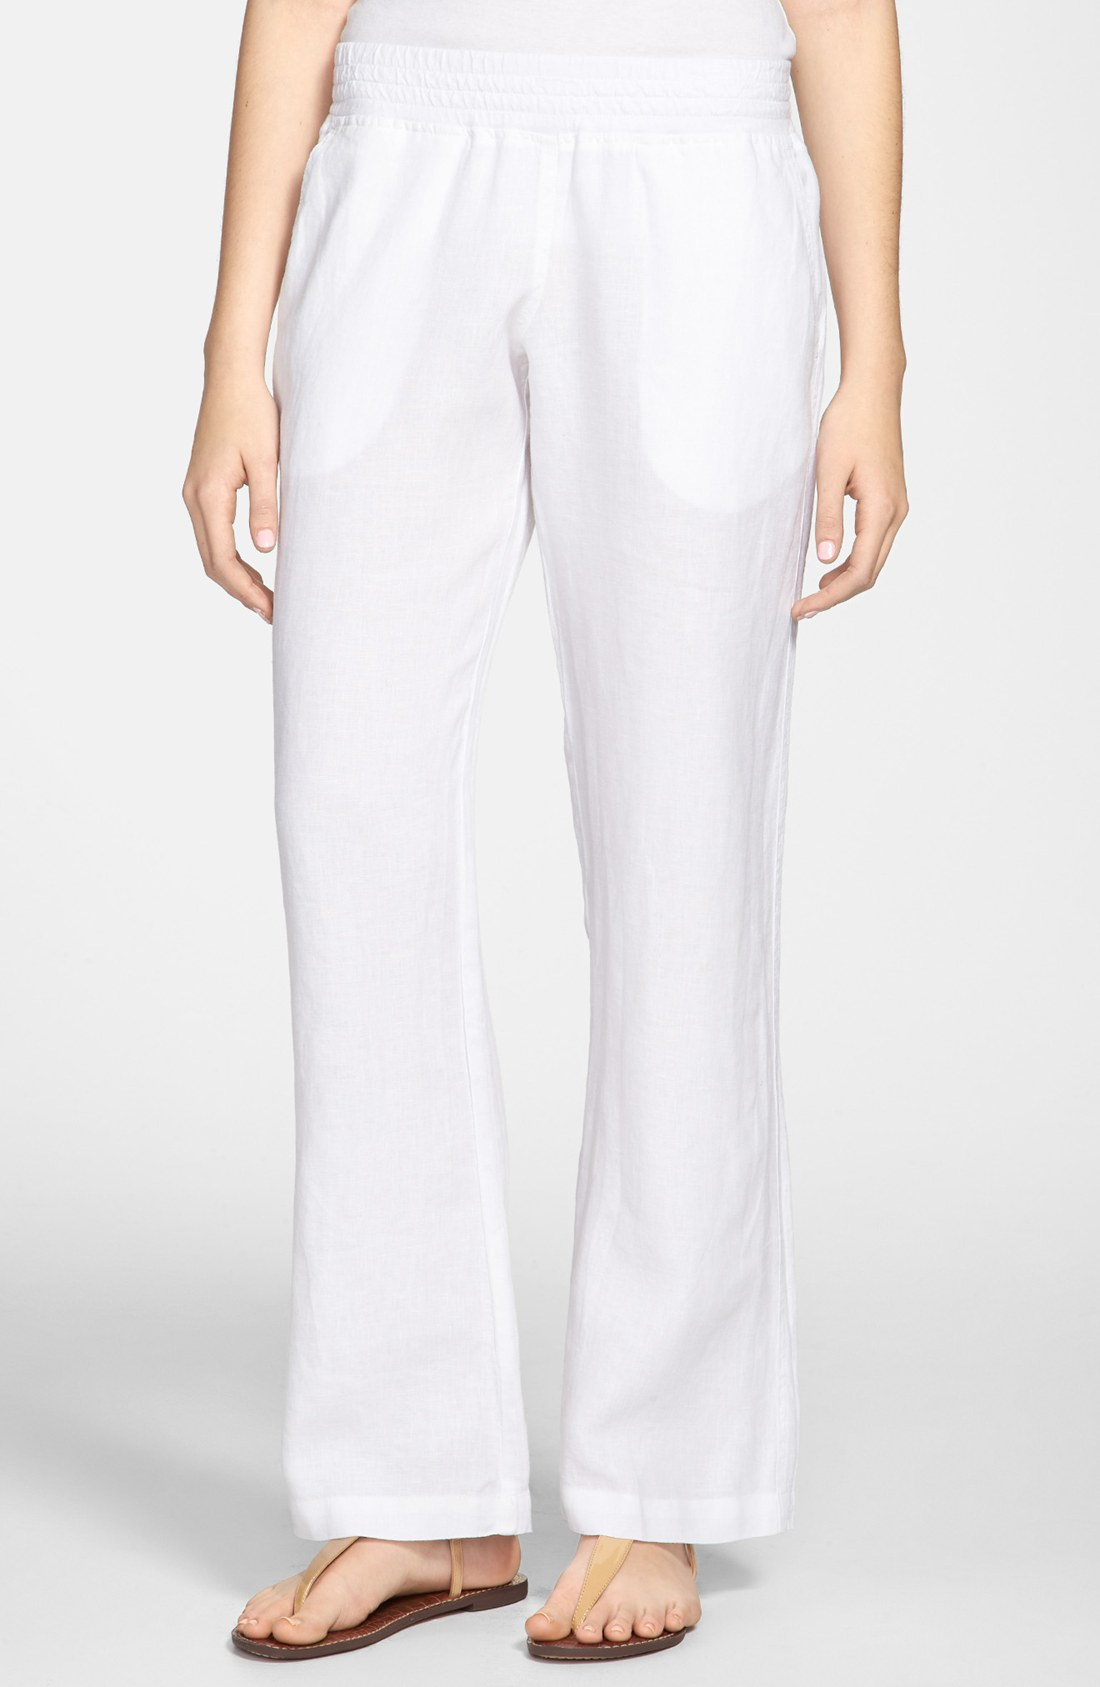 Allen Allen Linen Pants In White Lyst